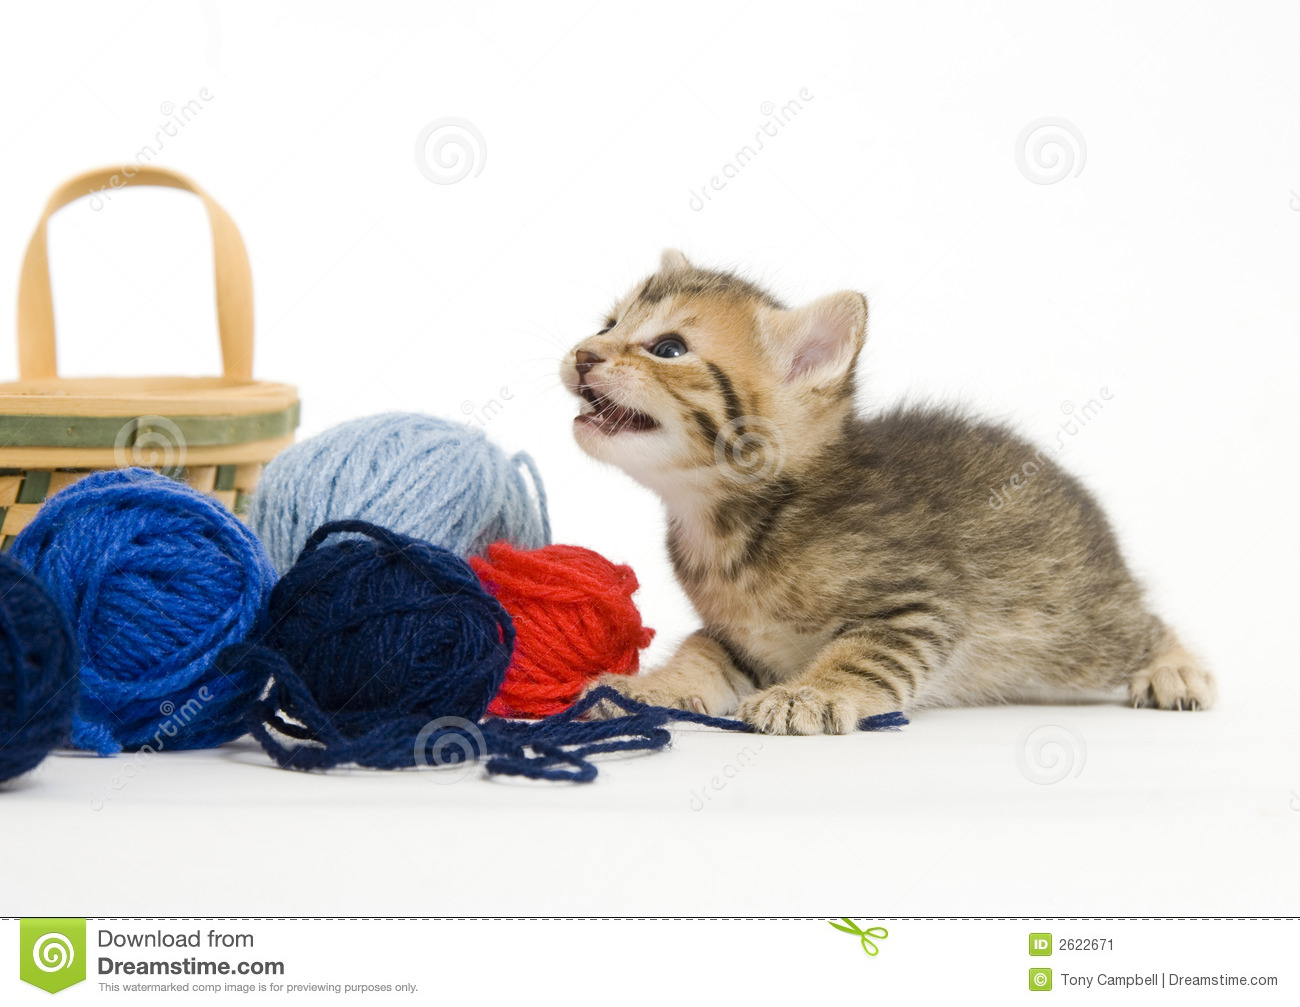 Kitten Playing With Yarn Stock Image - Image: 2622671